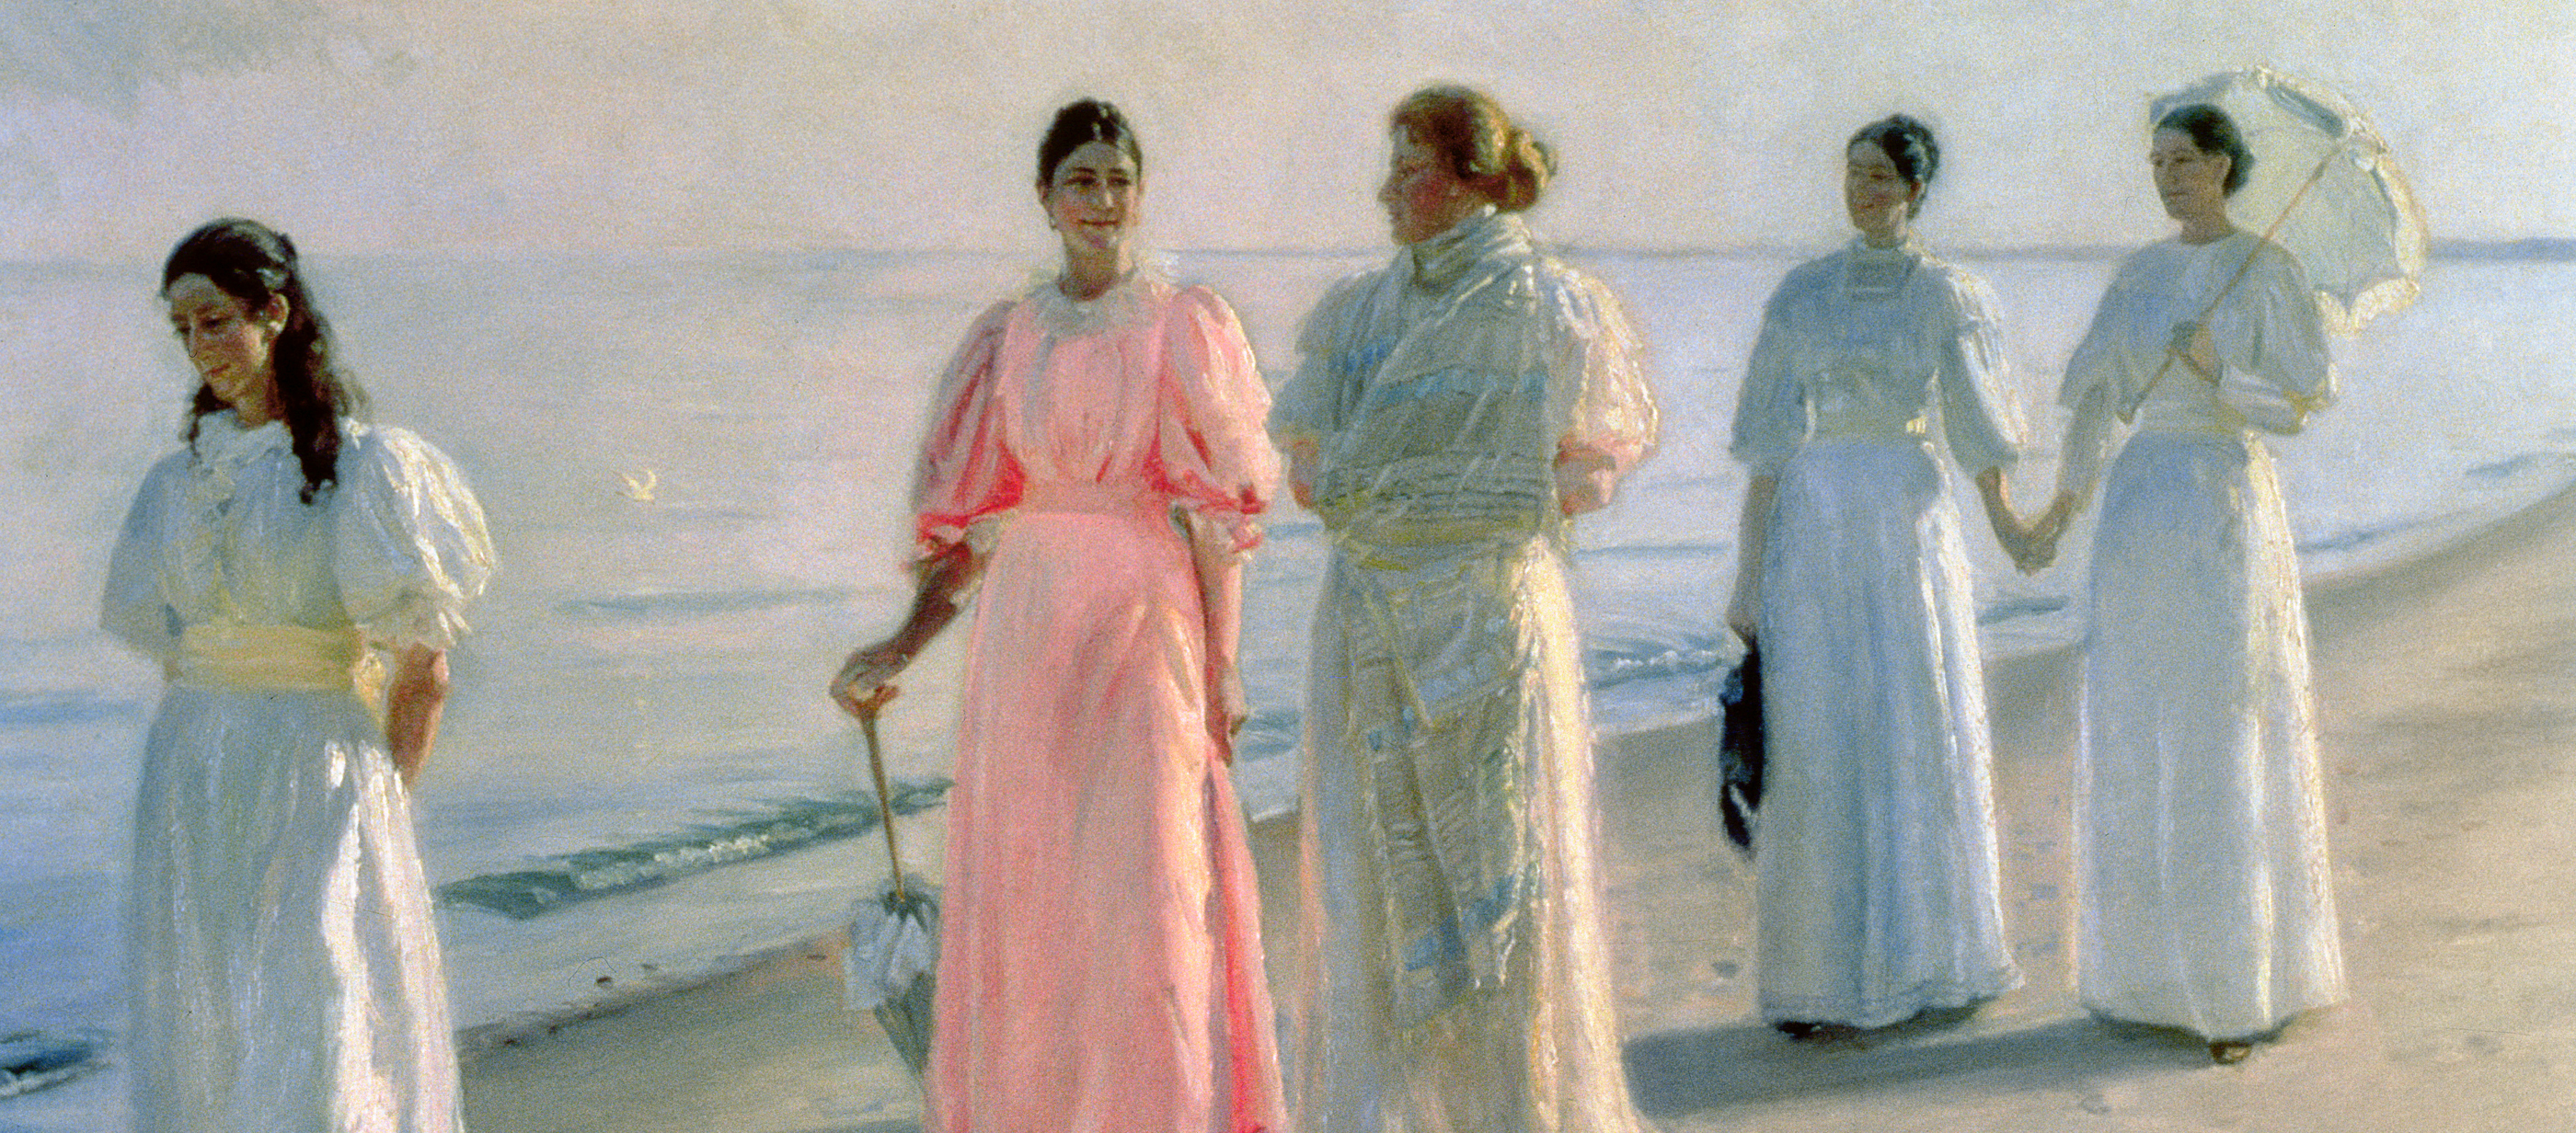 Promenade on the Beach, by Michael Ancher, c. 1896.